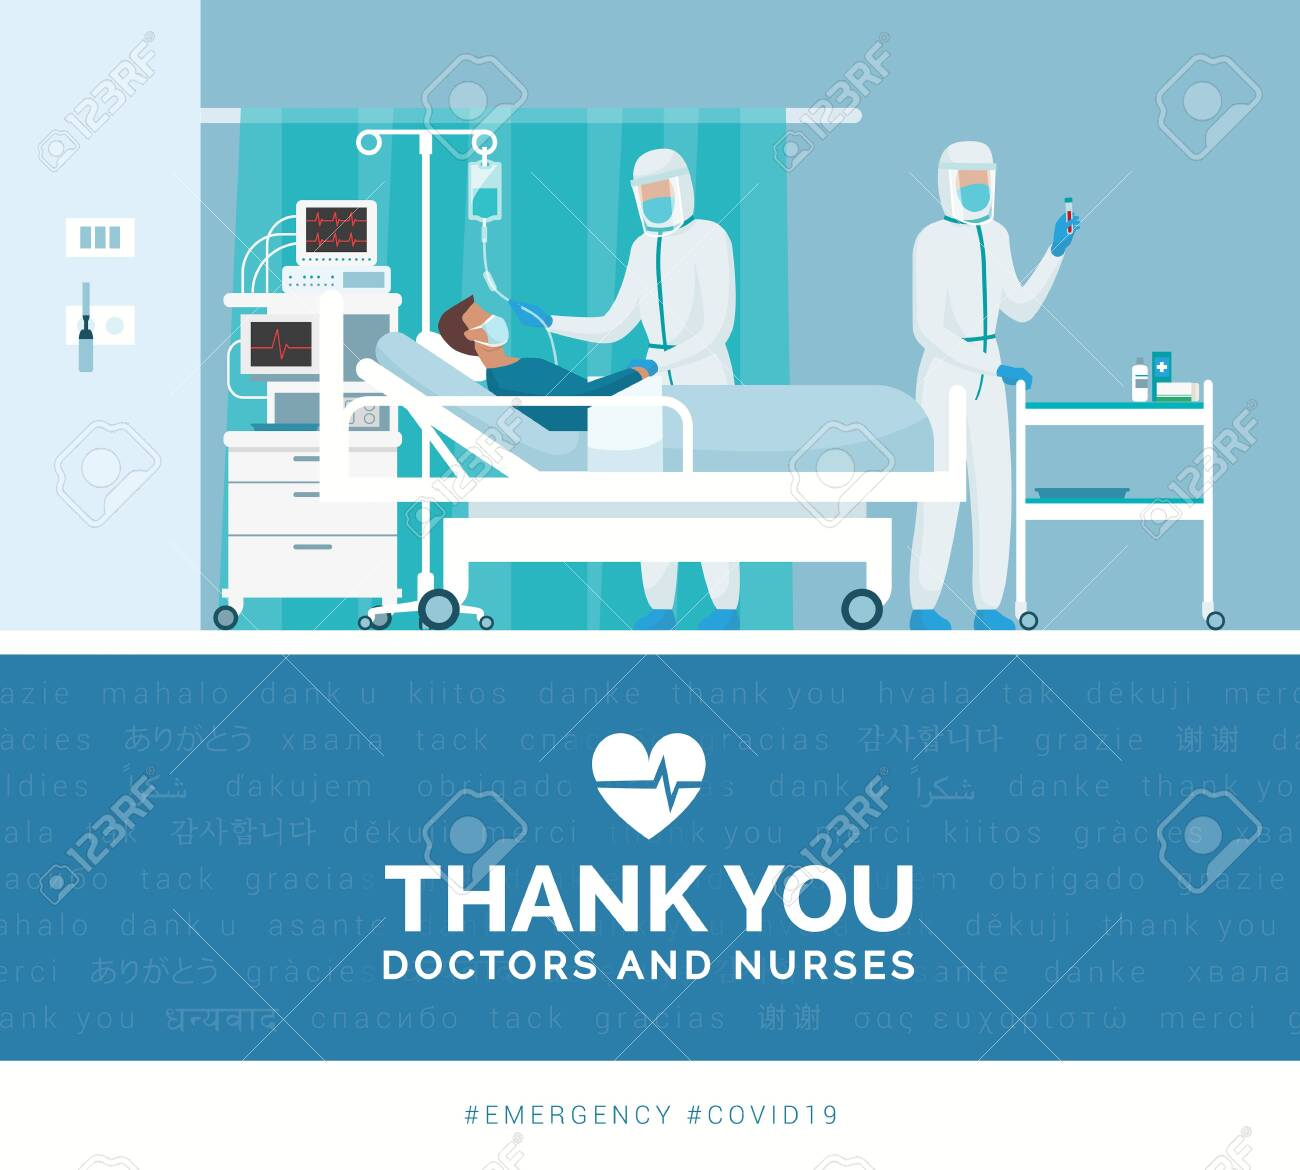 Thank you doctors and nurses working in the hospitals and fighting the covid-19 outbreak - 142174434